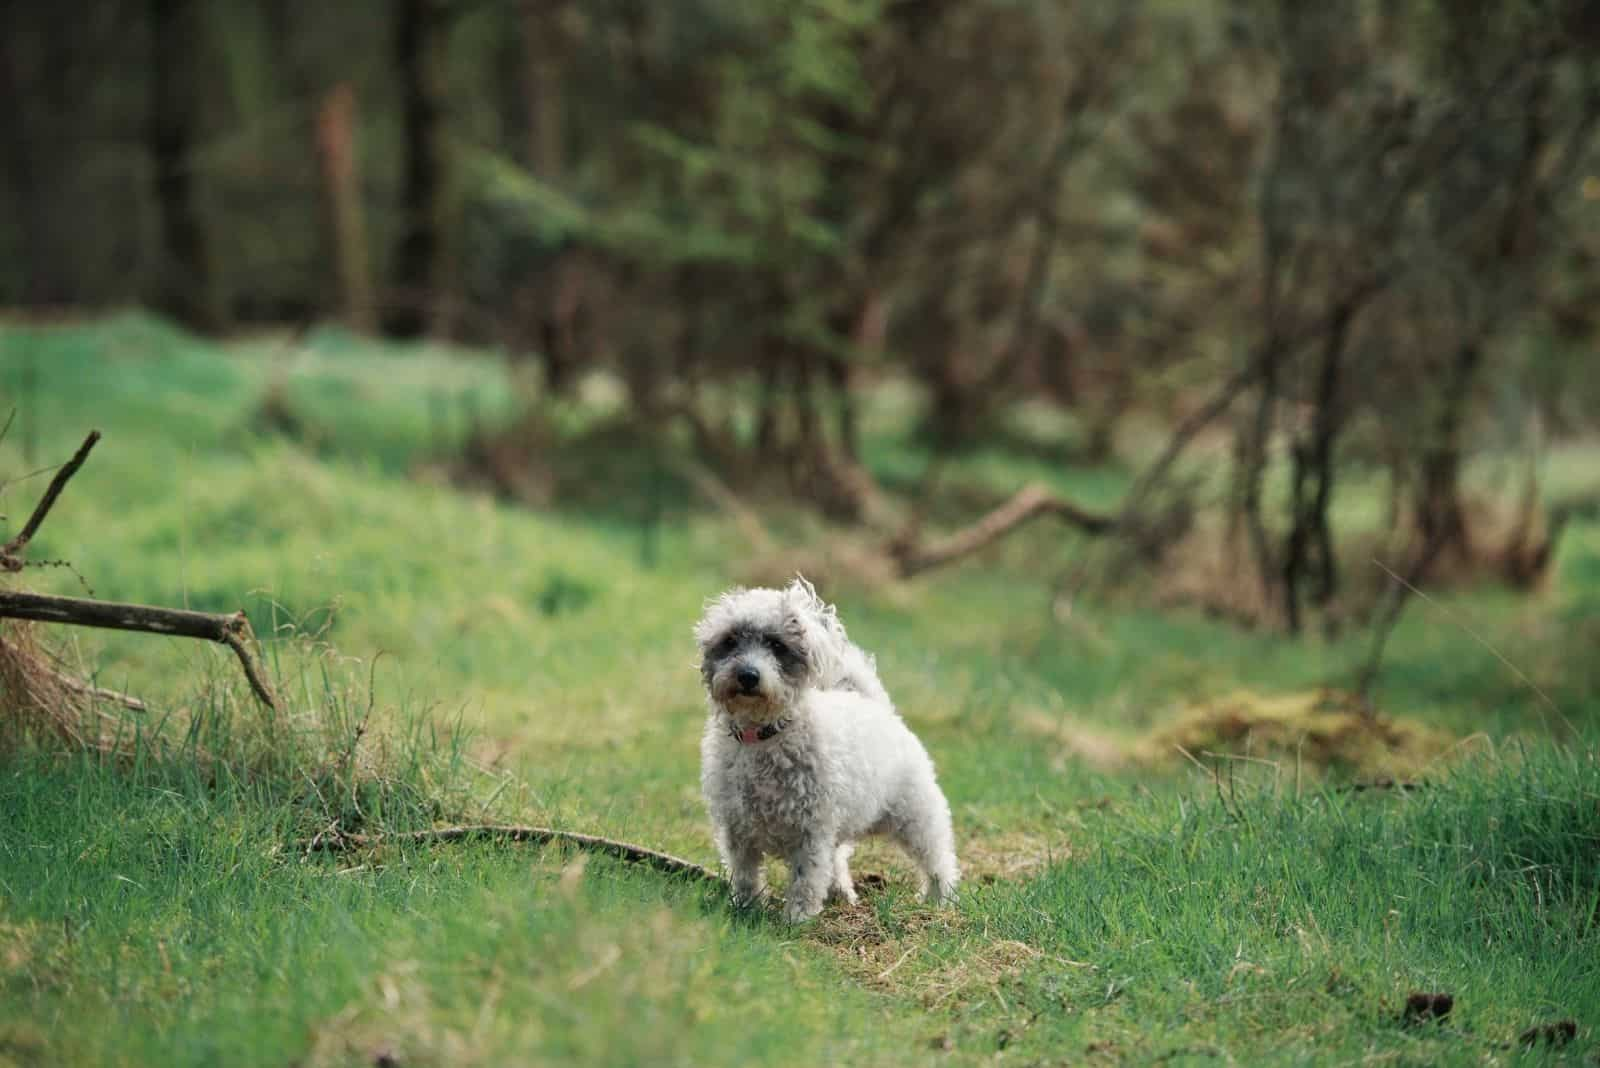 mixed breed poodle in the middle of the wilderness